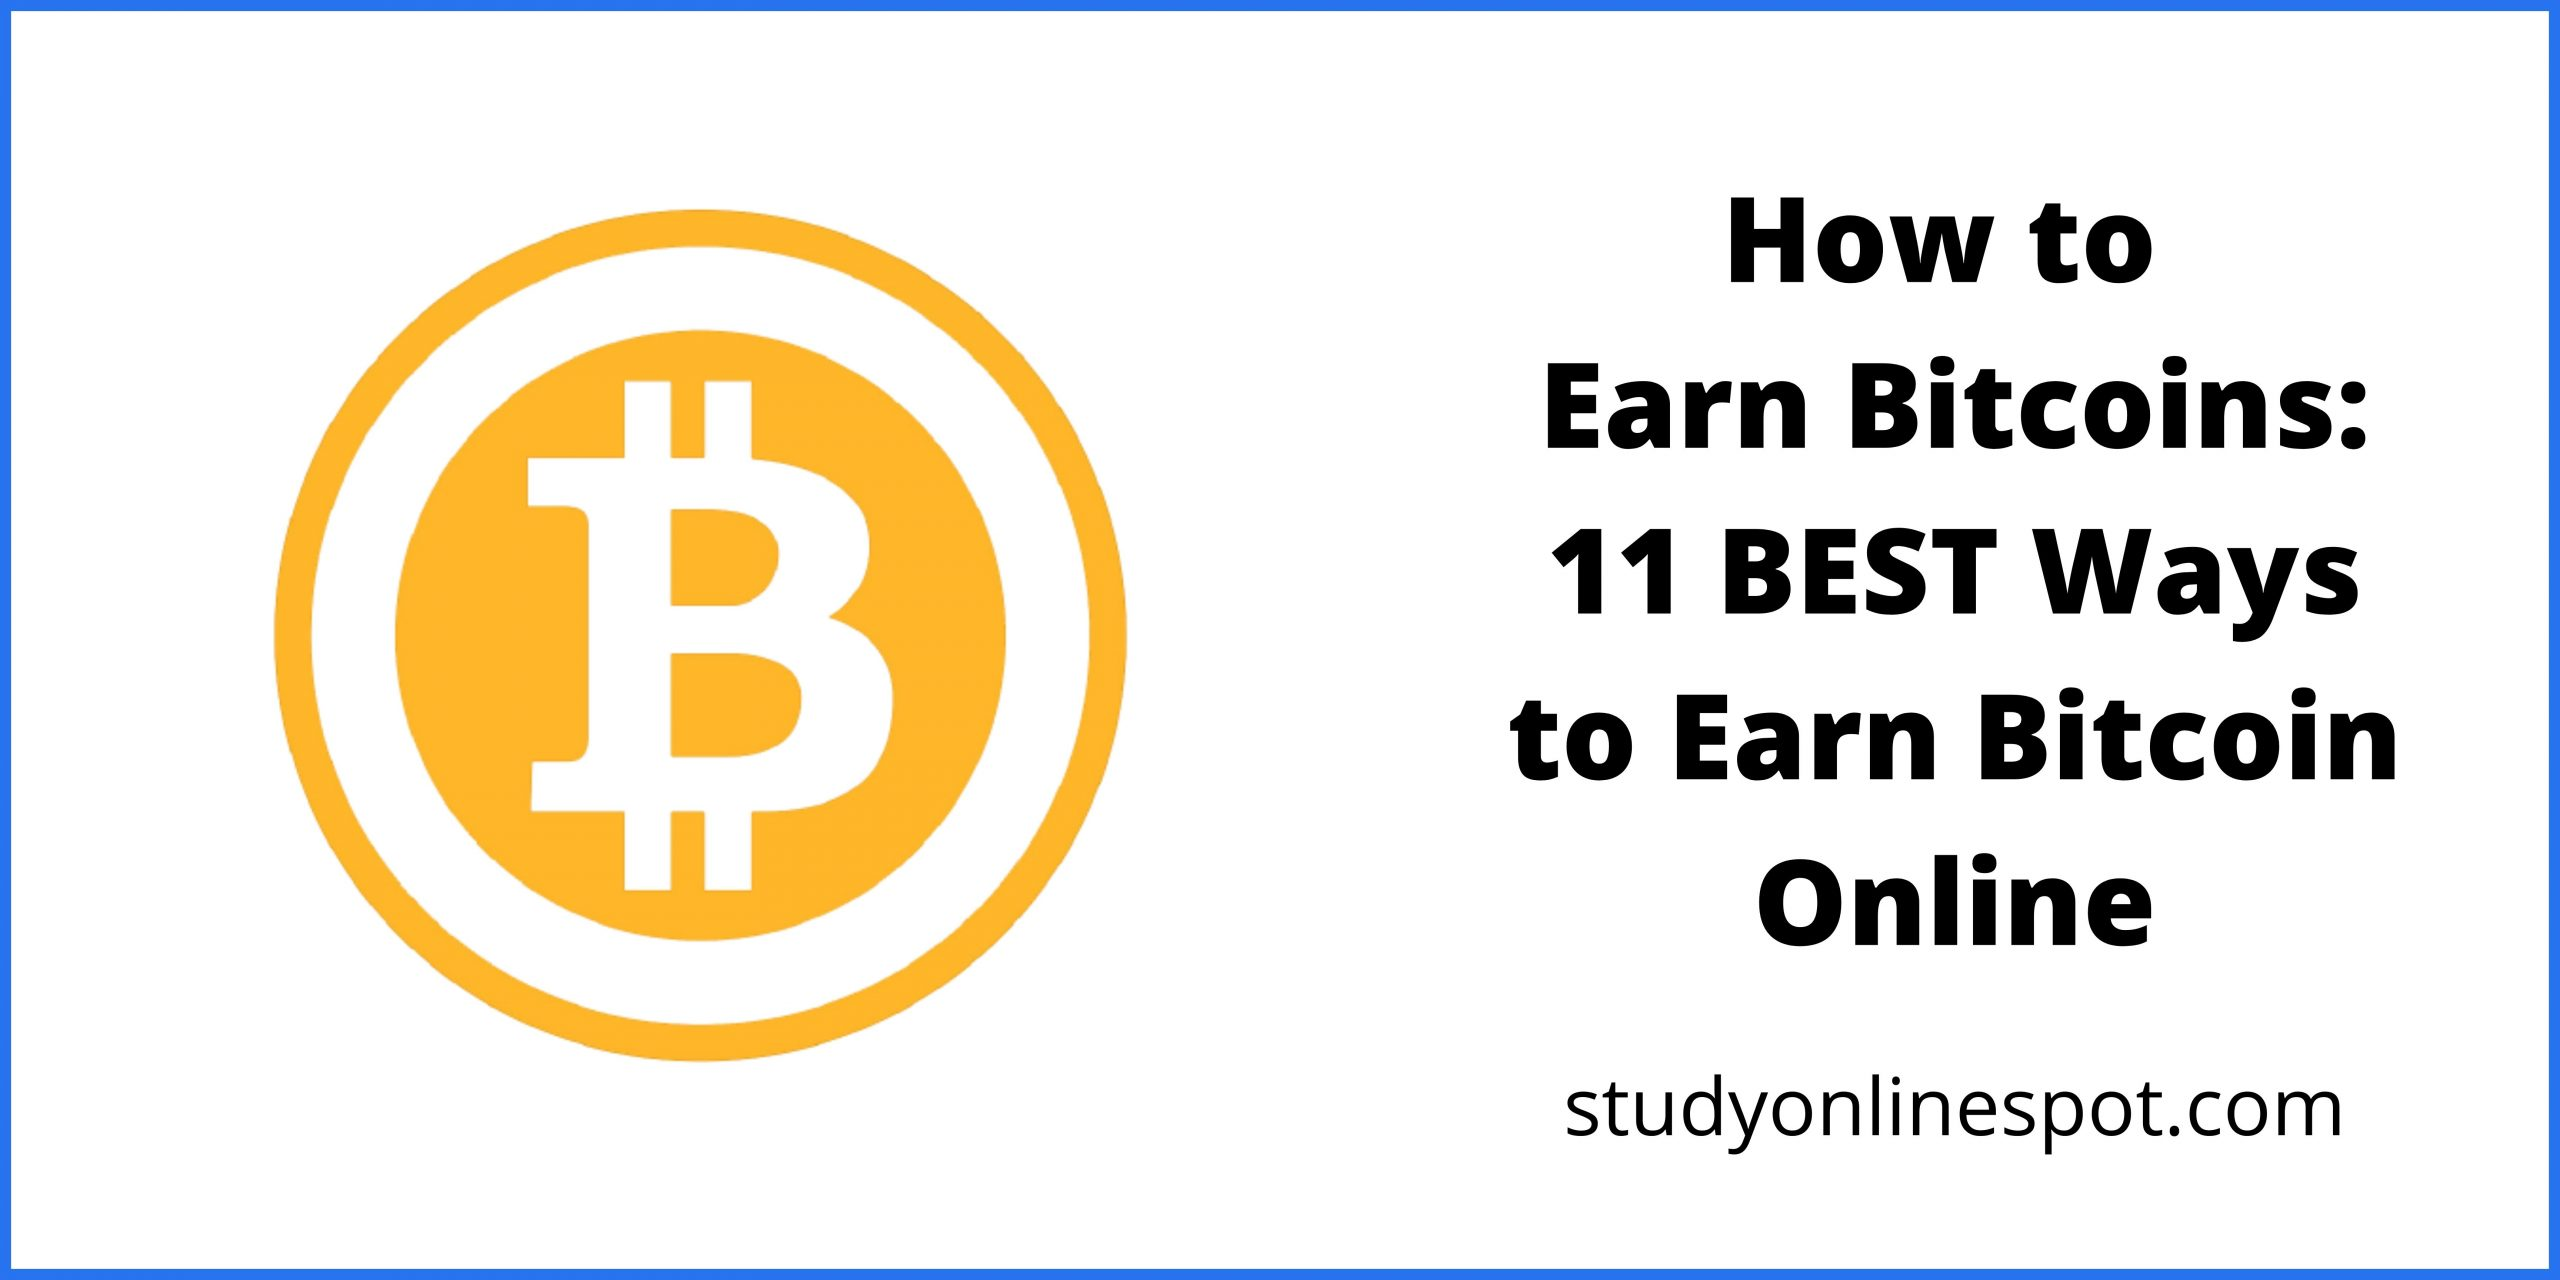 How to Earn Bitcoins Fast 11 BEST Ways to Earn Bitcoin Online